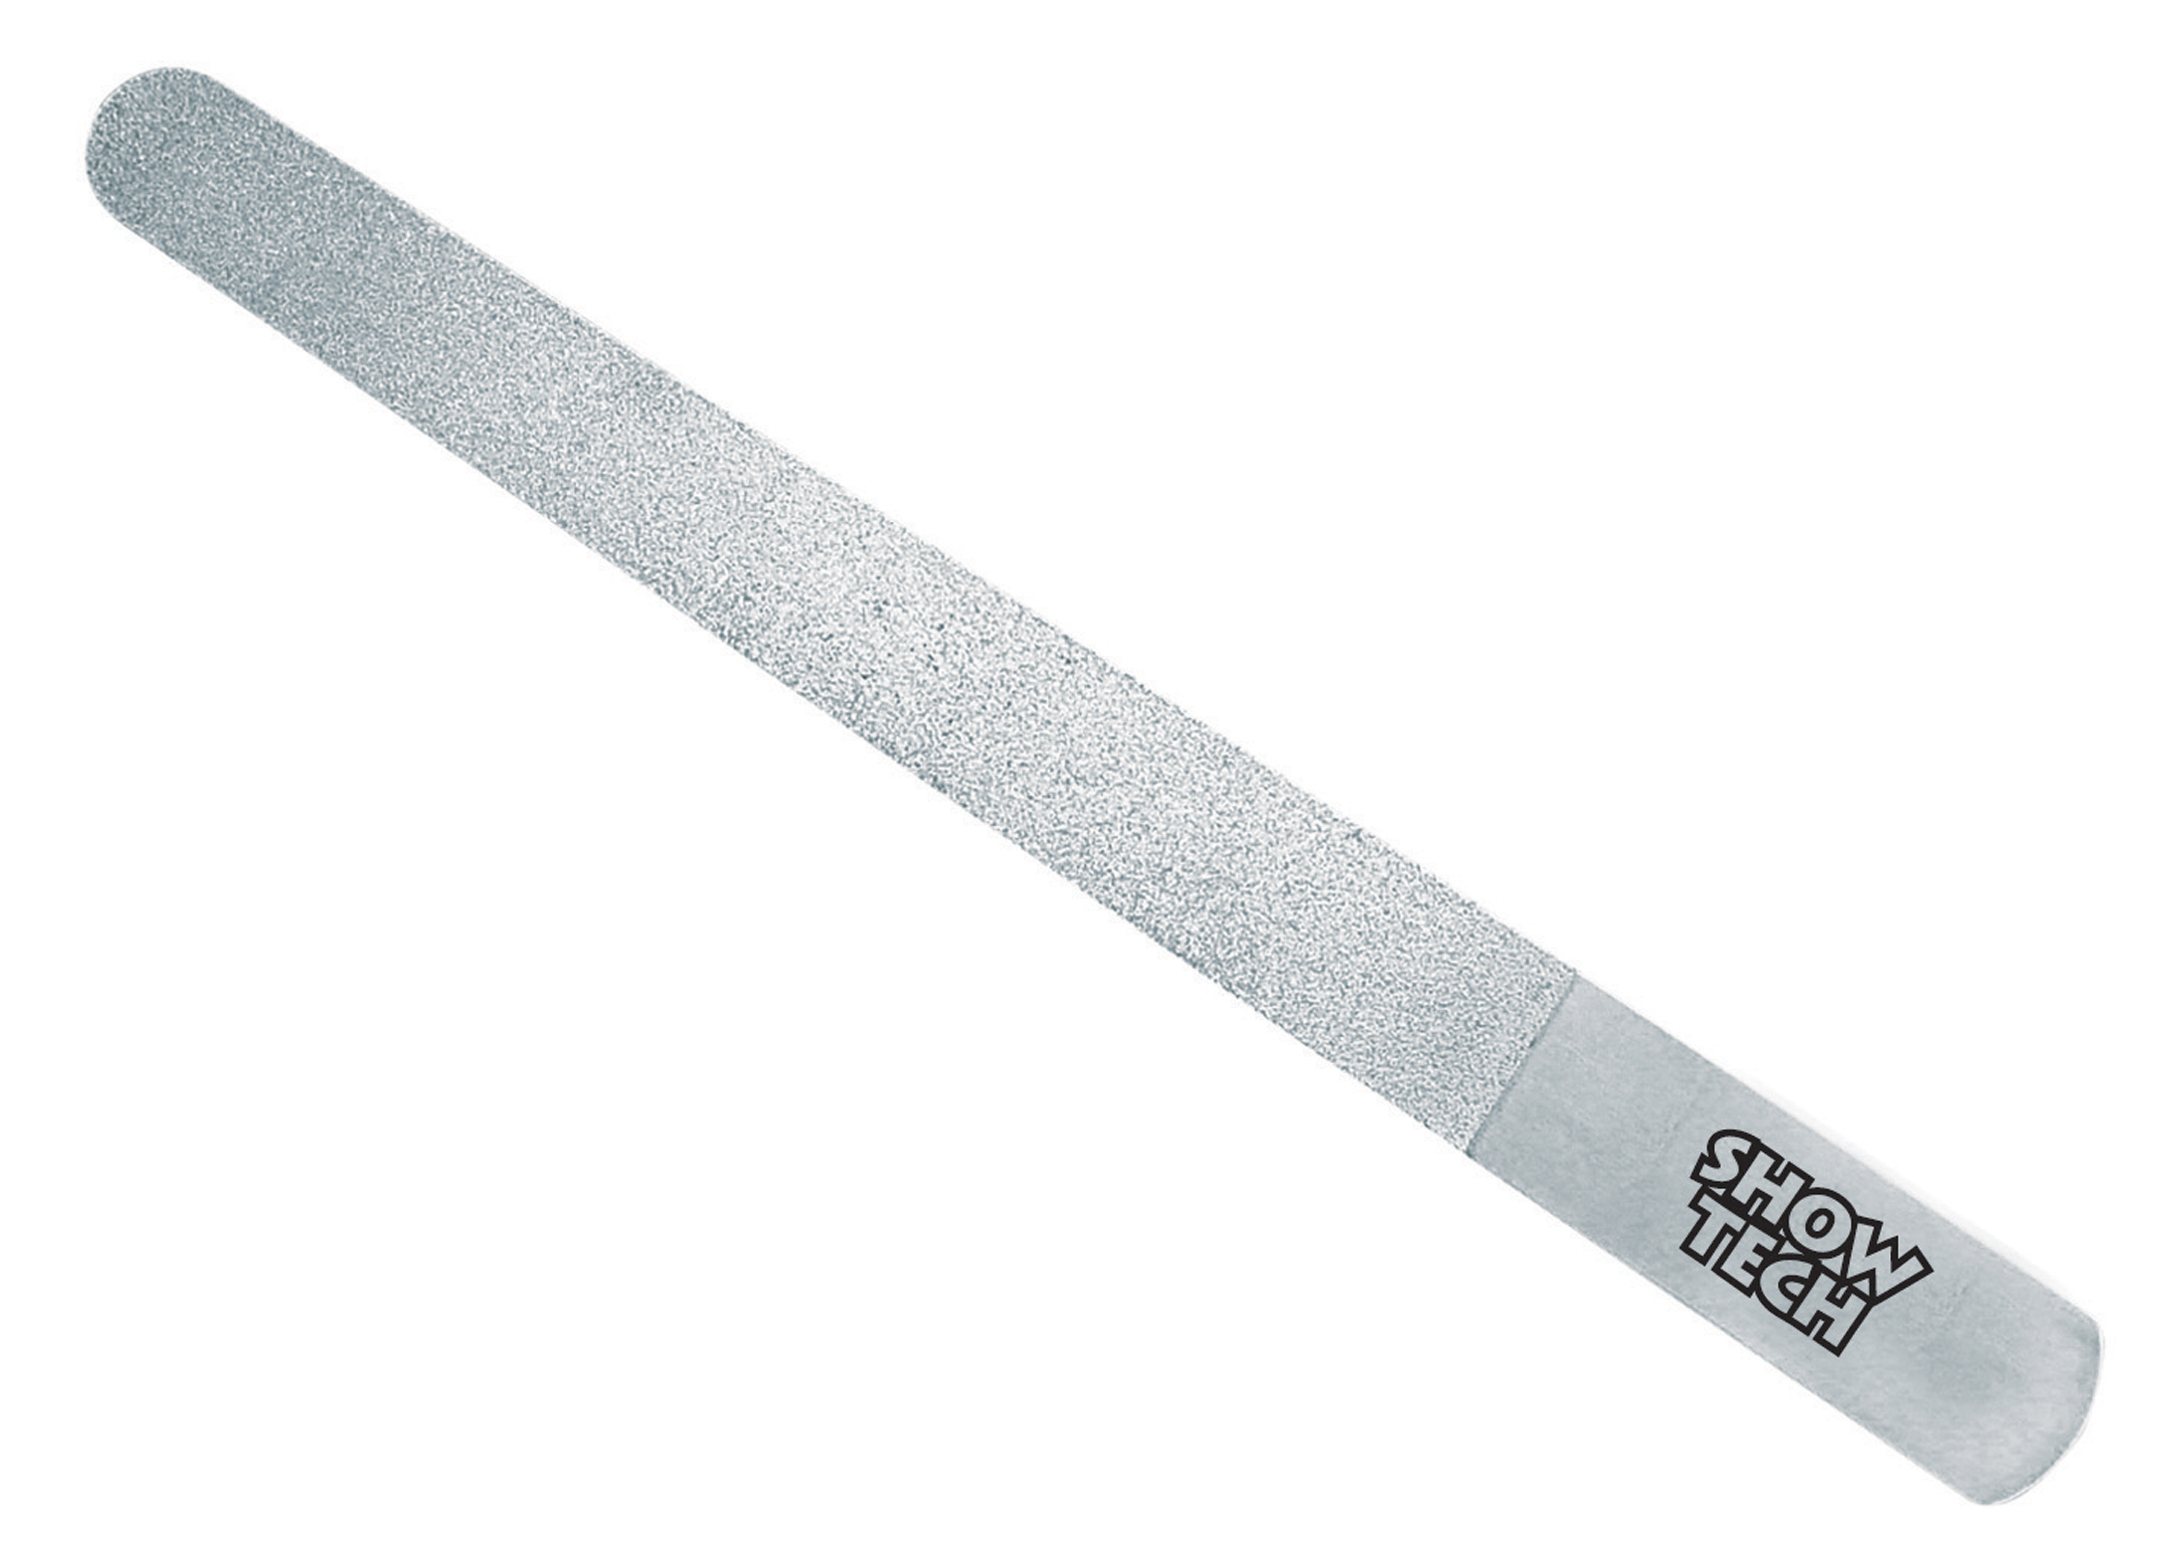 Show Tech Stainless Steel Nail File